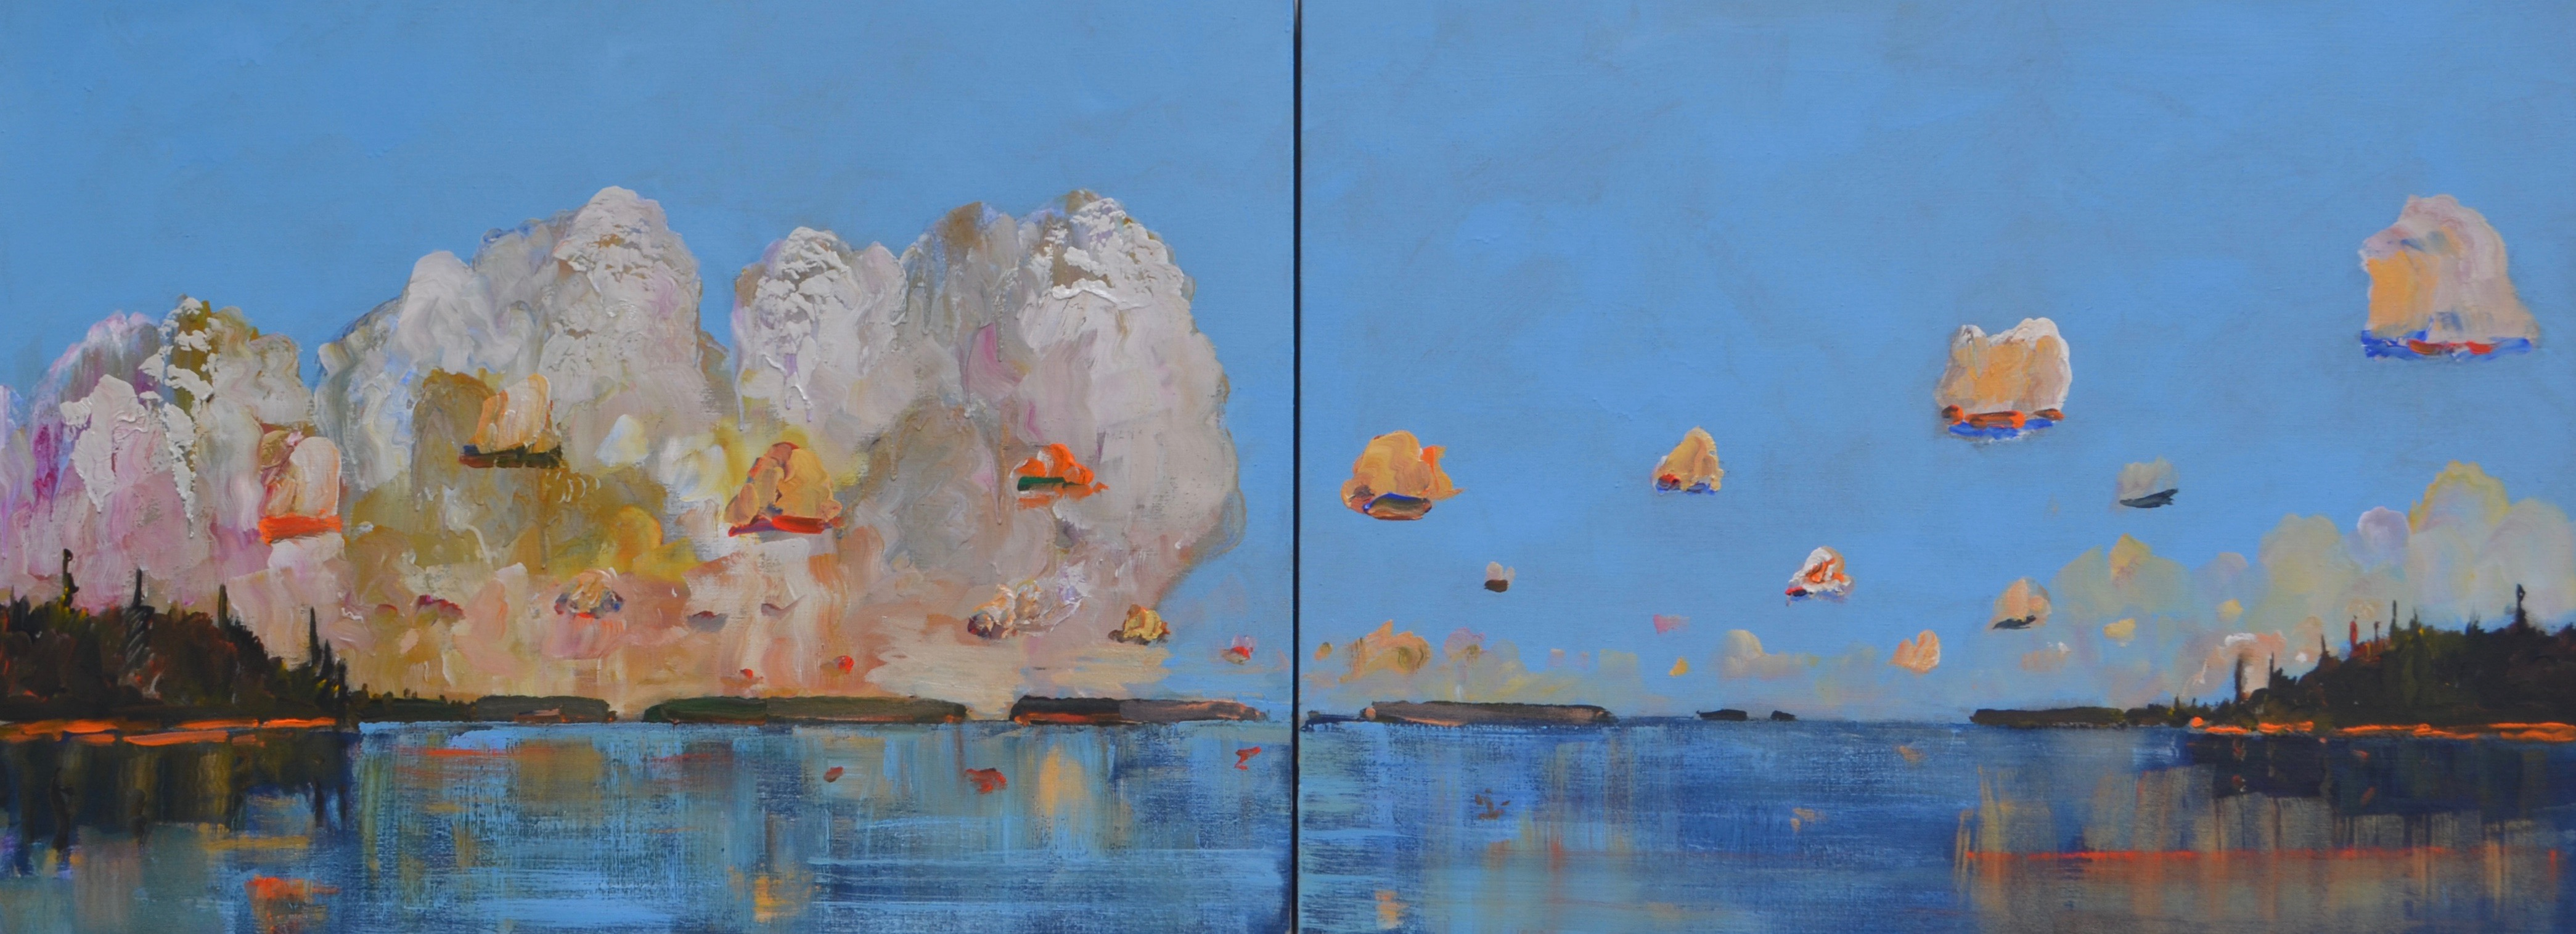 Clear-Hot-Day-Cumulus-Building-2016-acrylic-on-linen-diptych-36-x-96